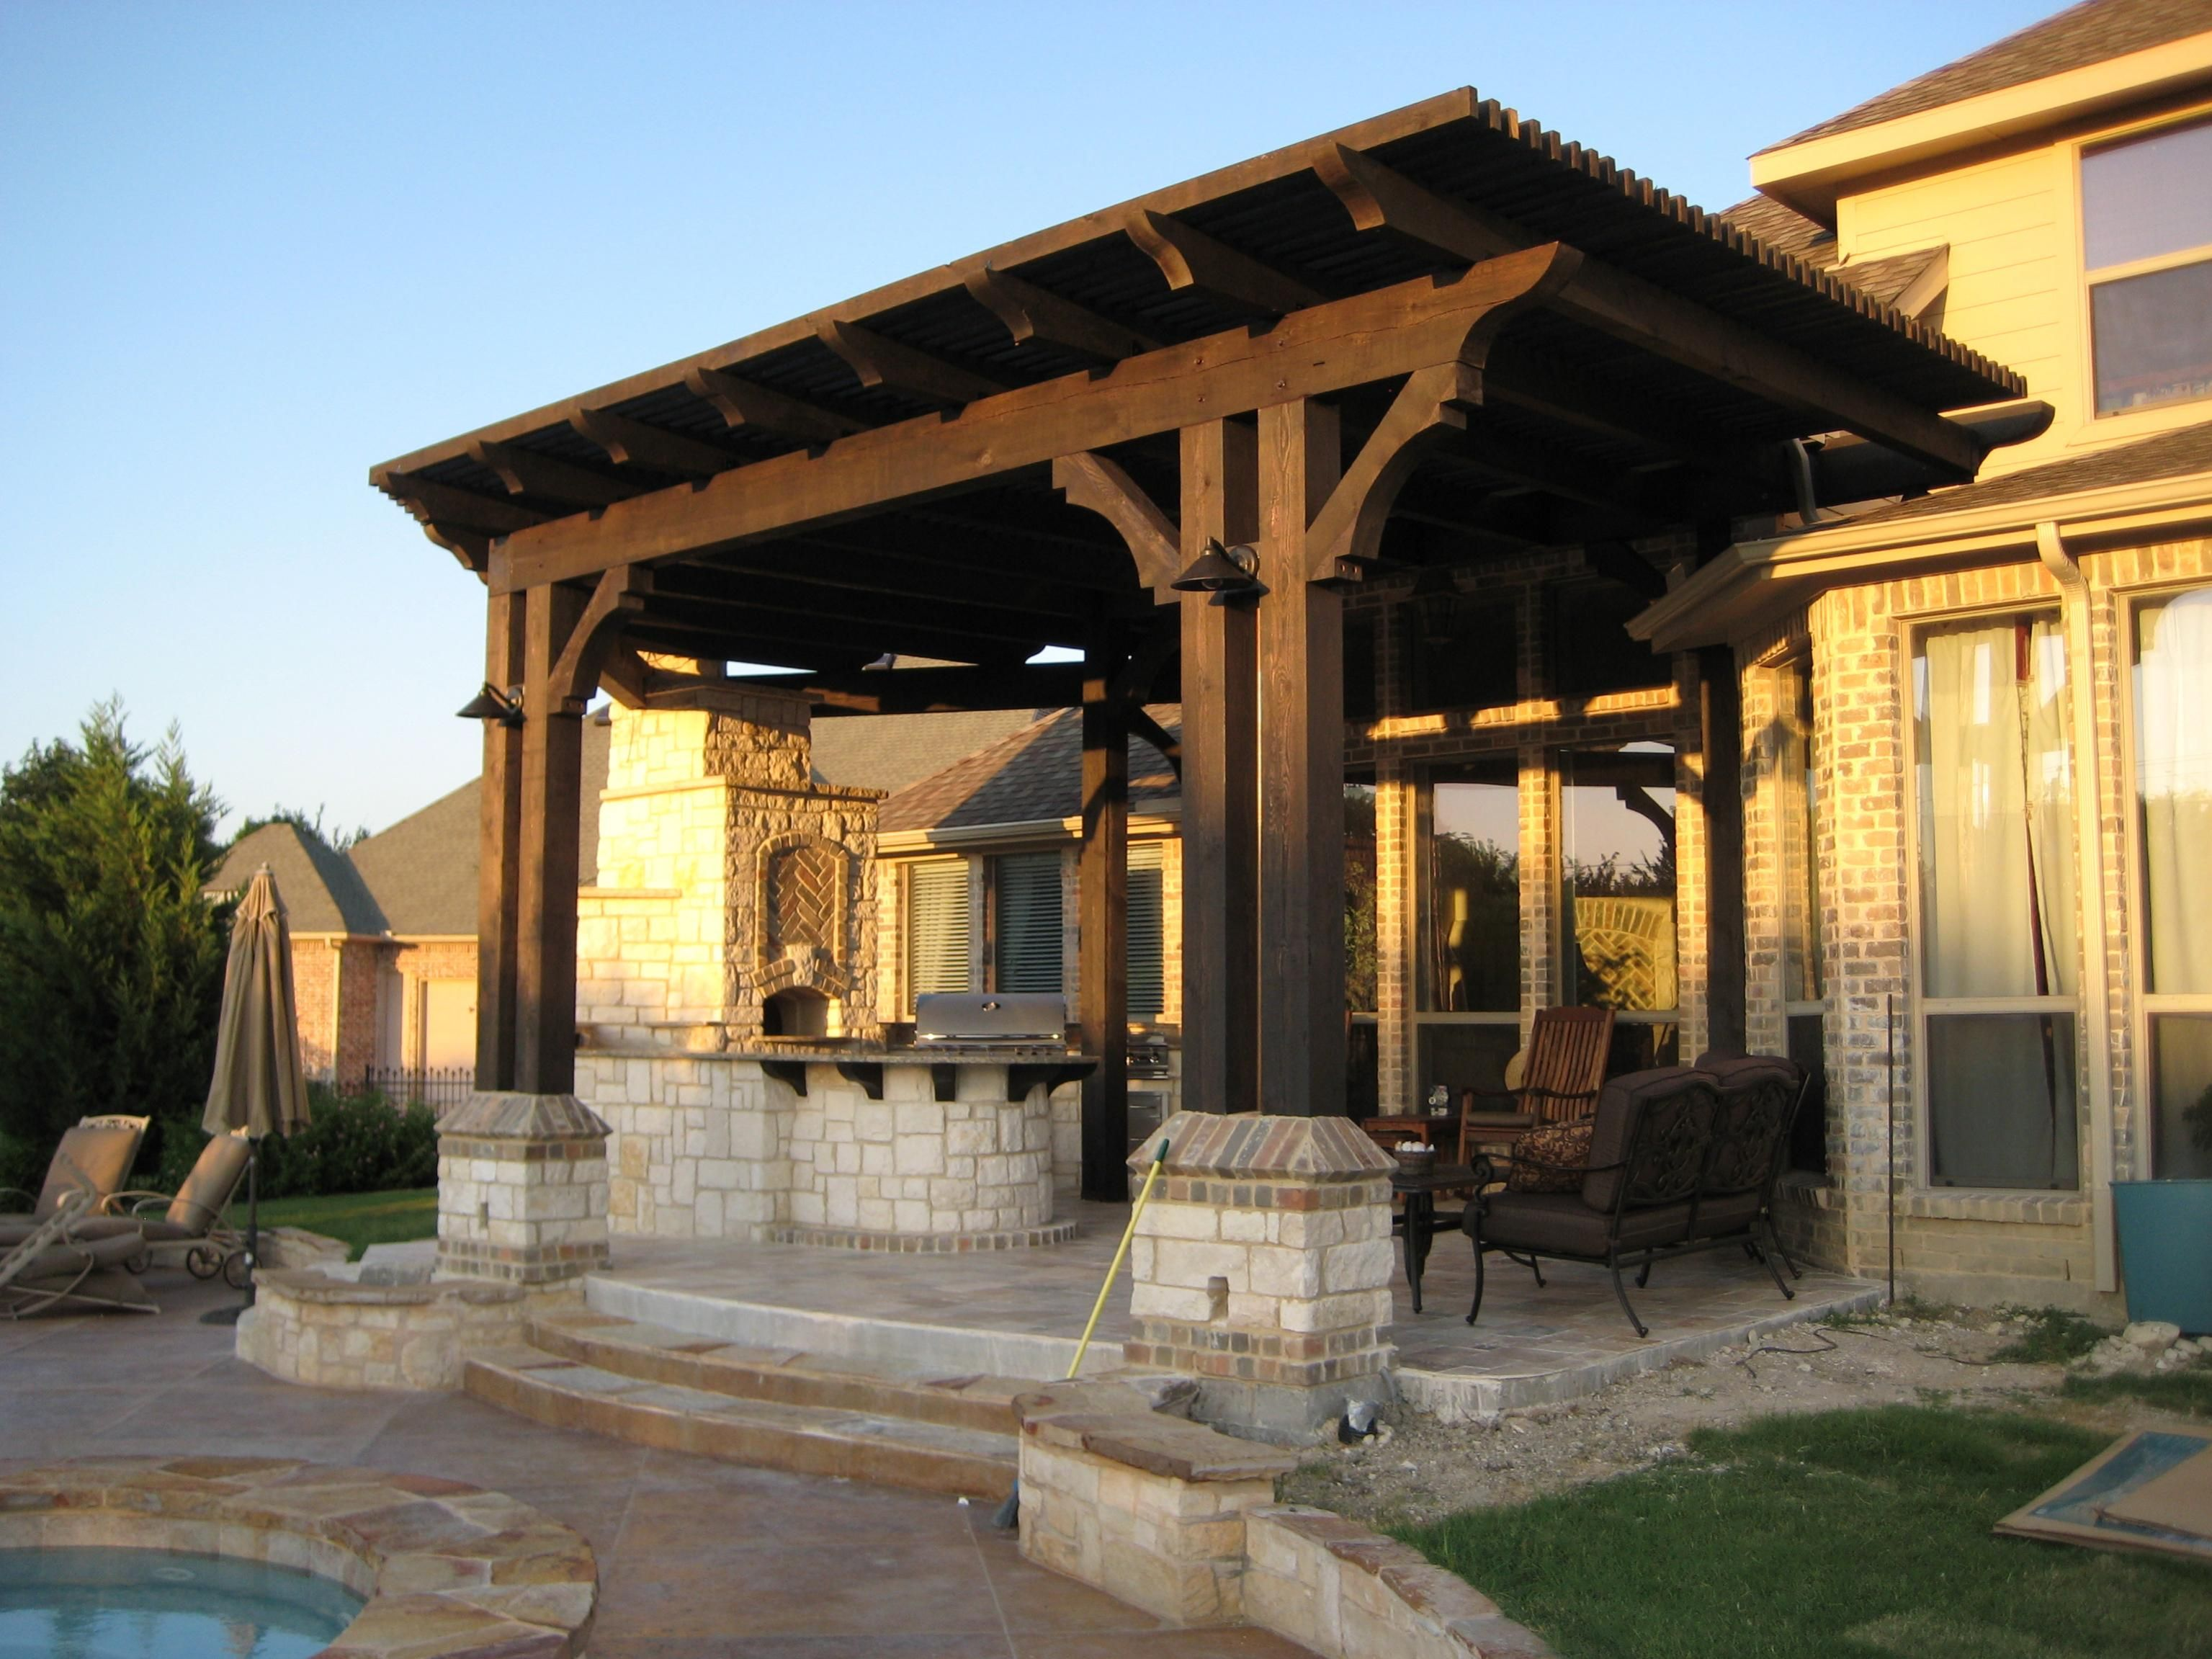 diy pergola ideas - Arbor Designs Ideas